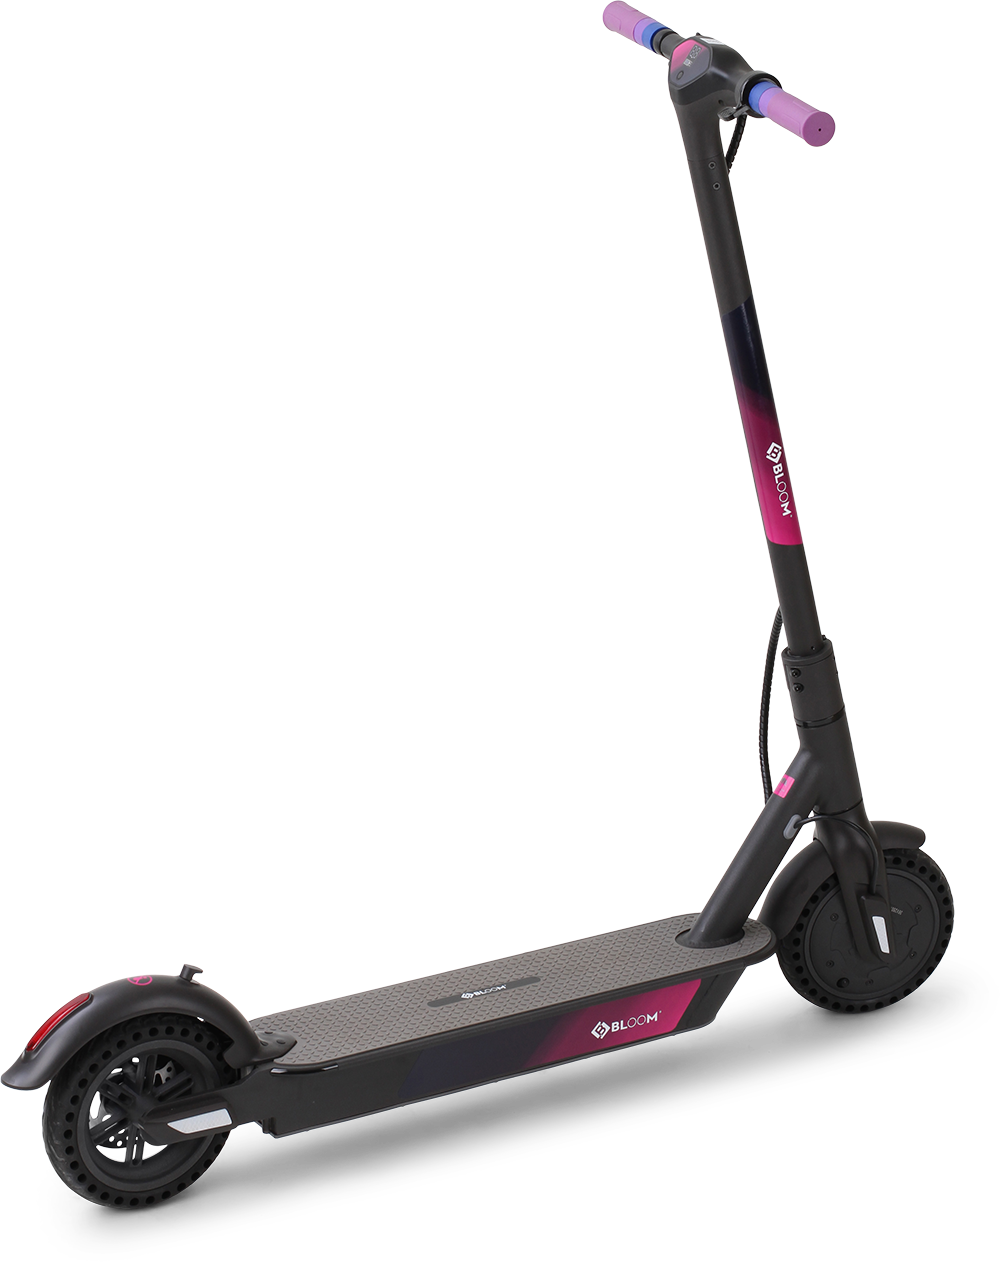 BLOOM scooter sharing